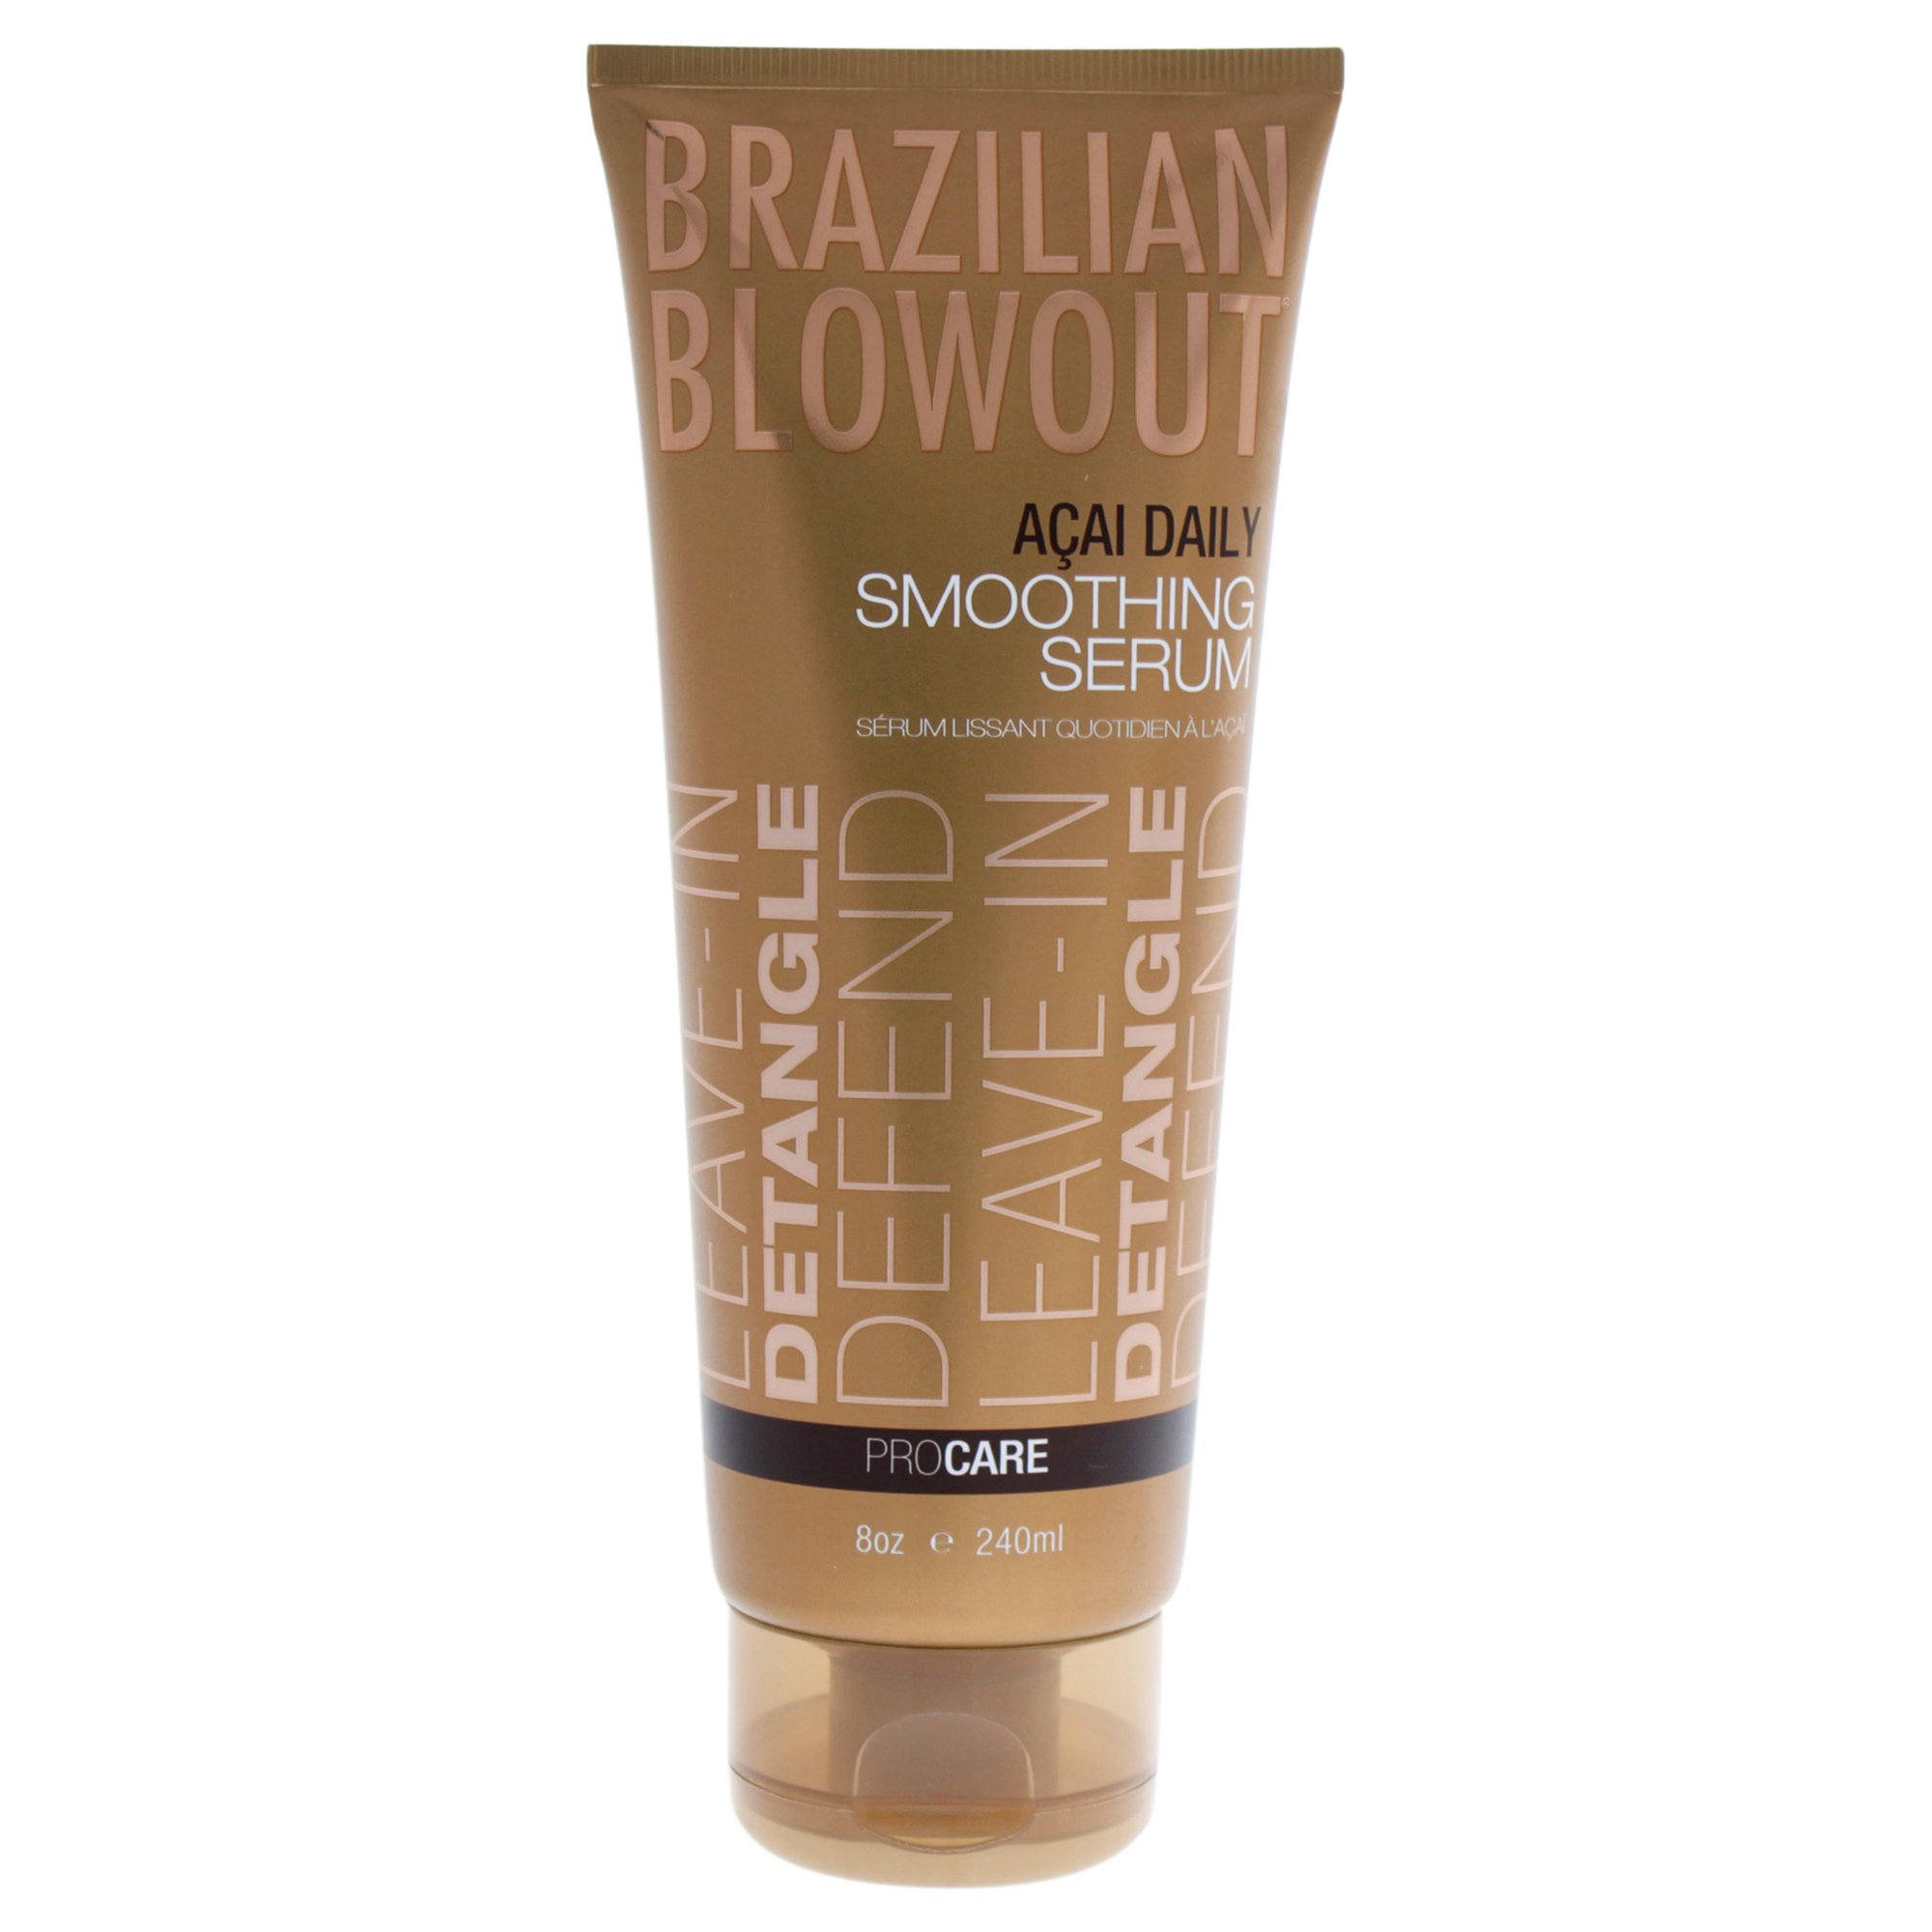 Brazilian Blowout Acai Daily Smoothing Serum, 8 Ounce